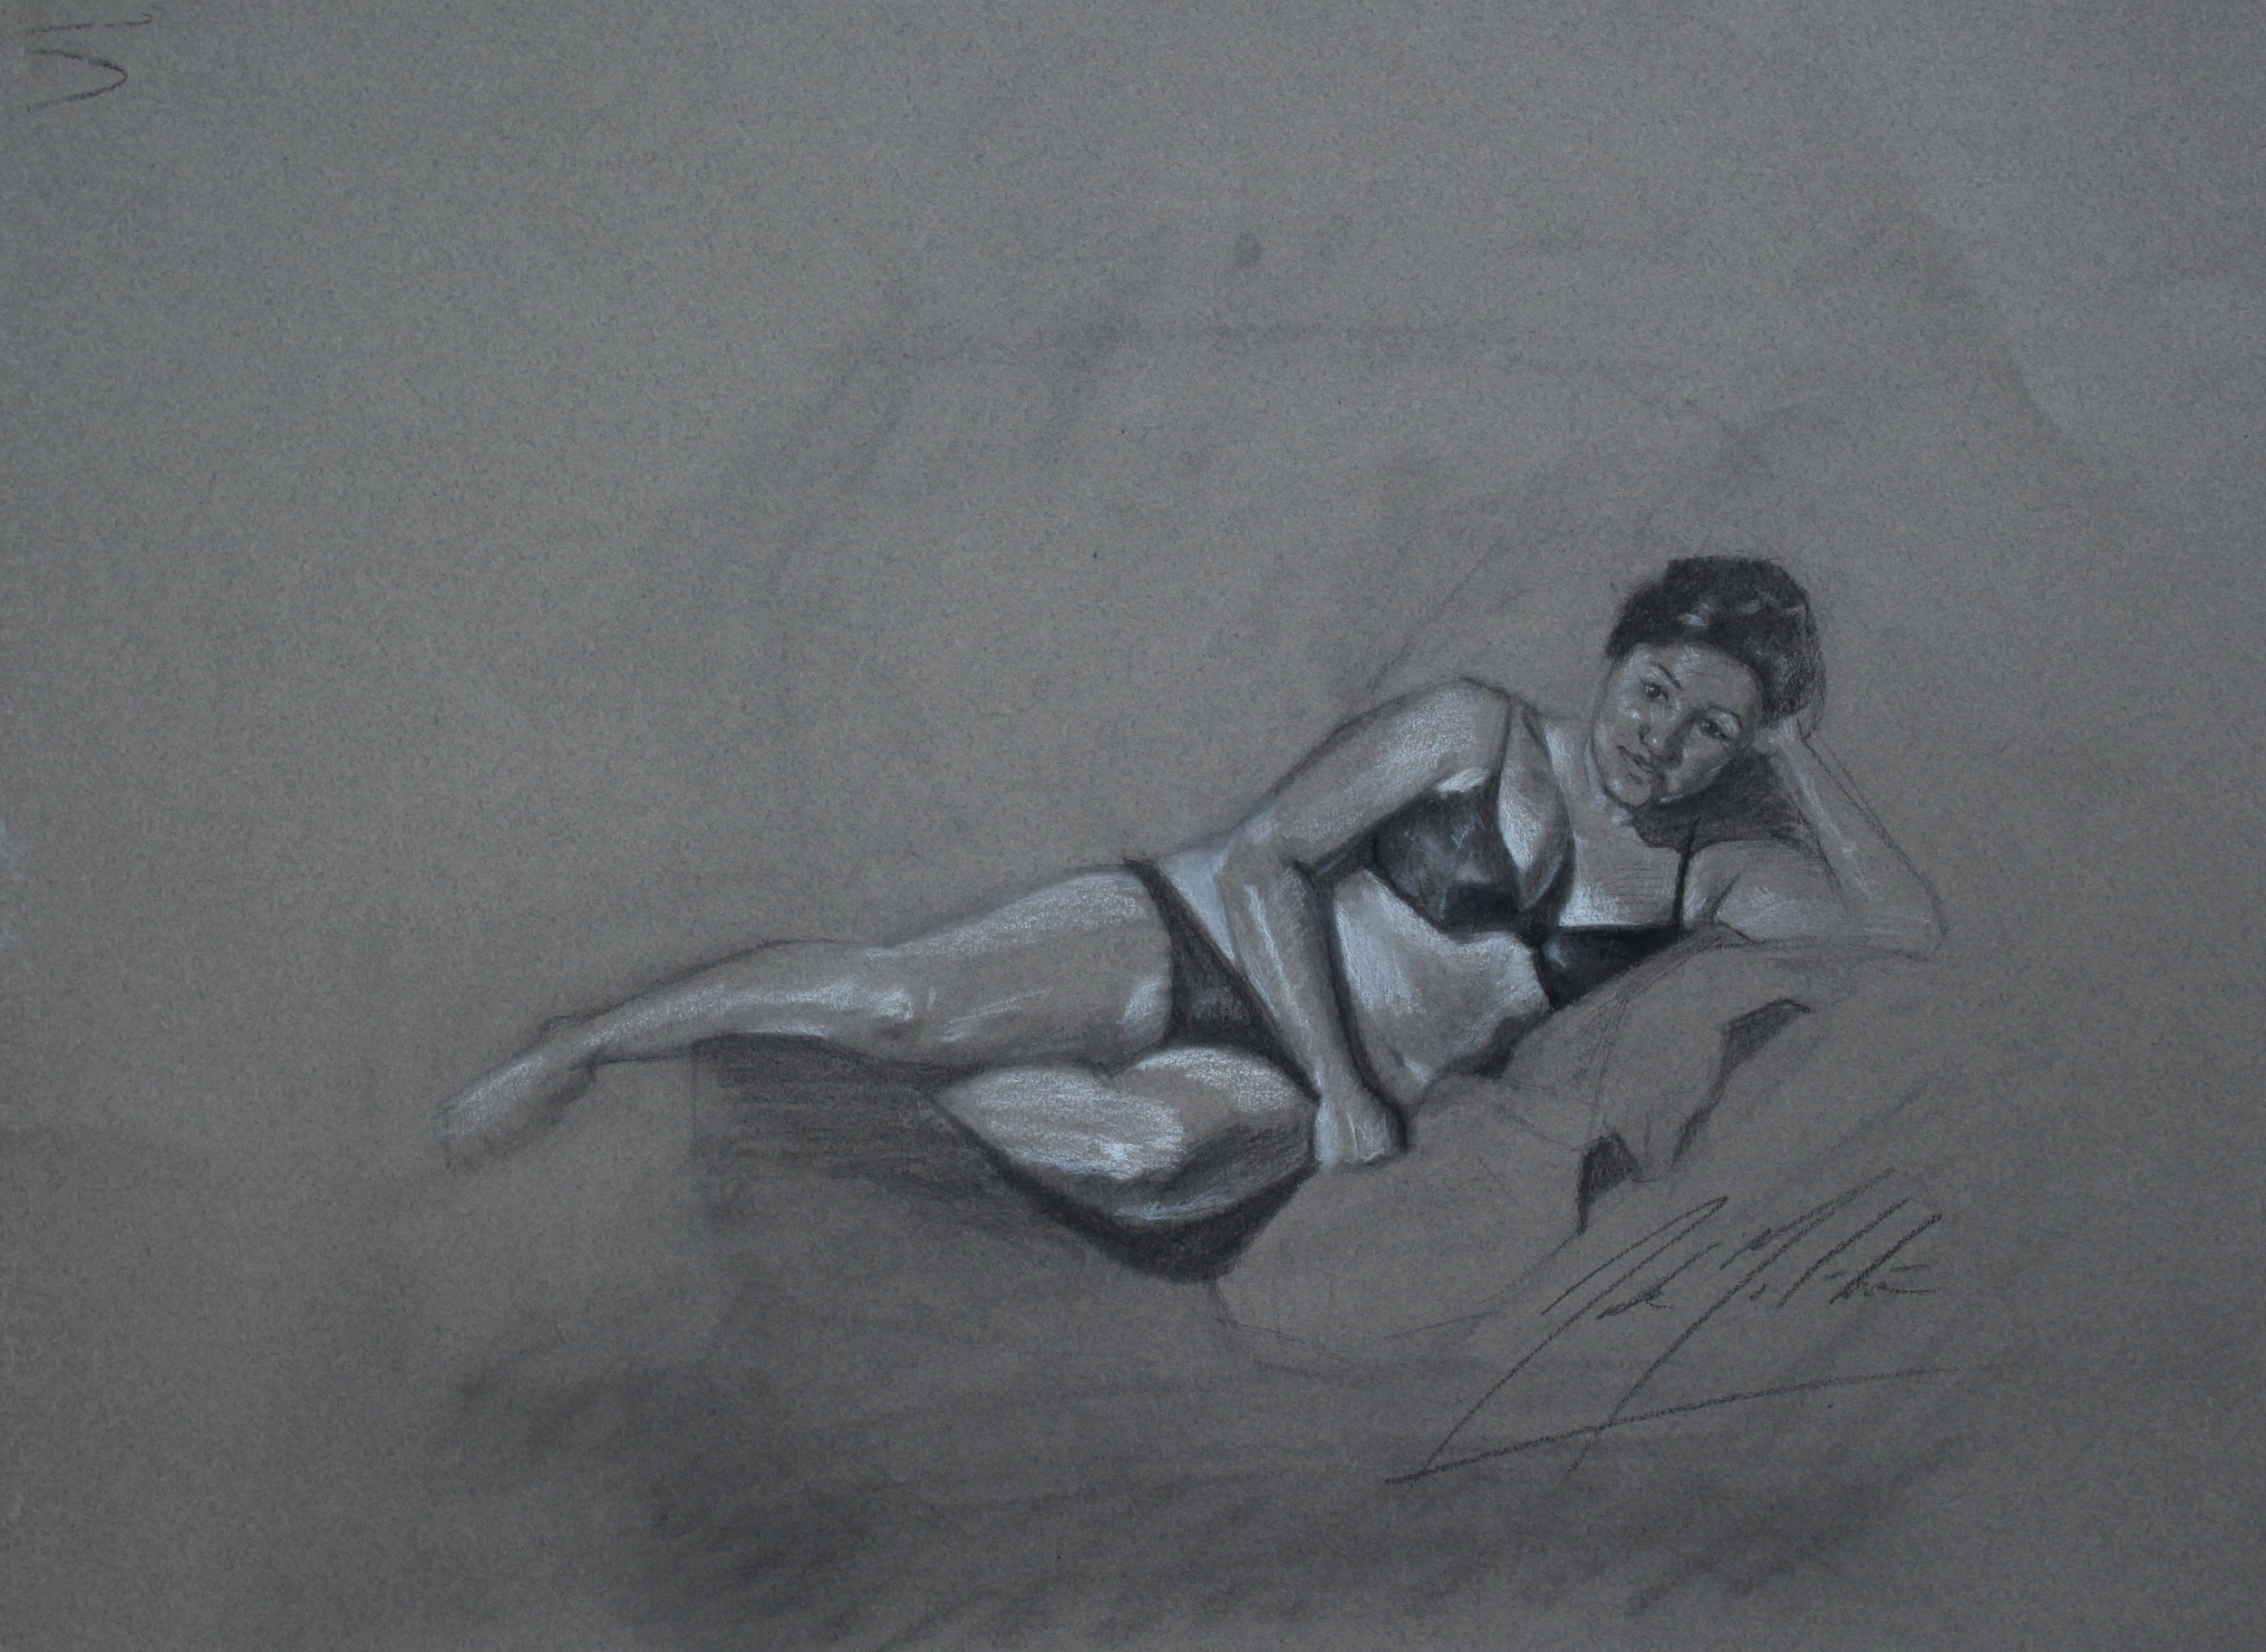 Reclining, 2014, charcoal on paper, 8 x 10 inches